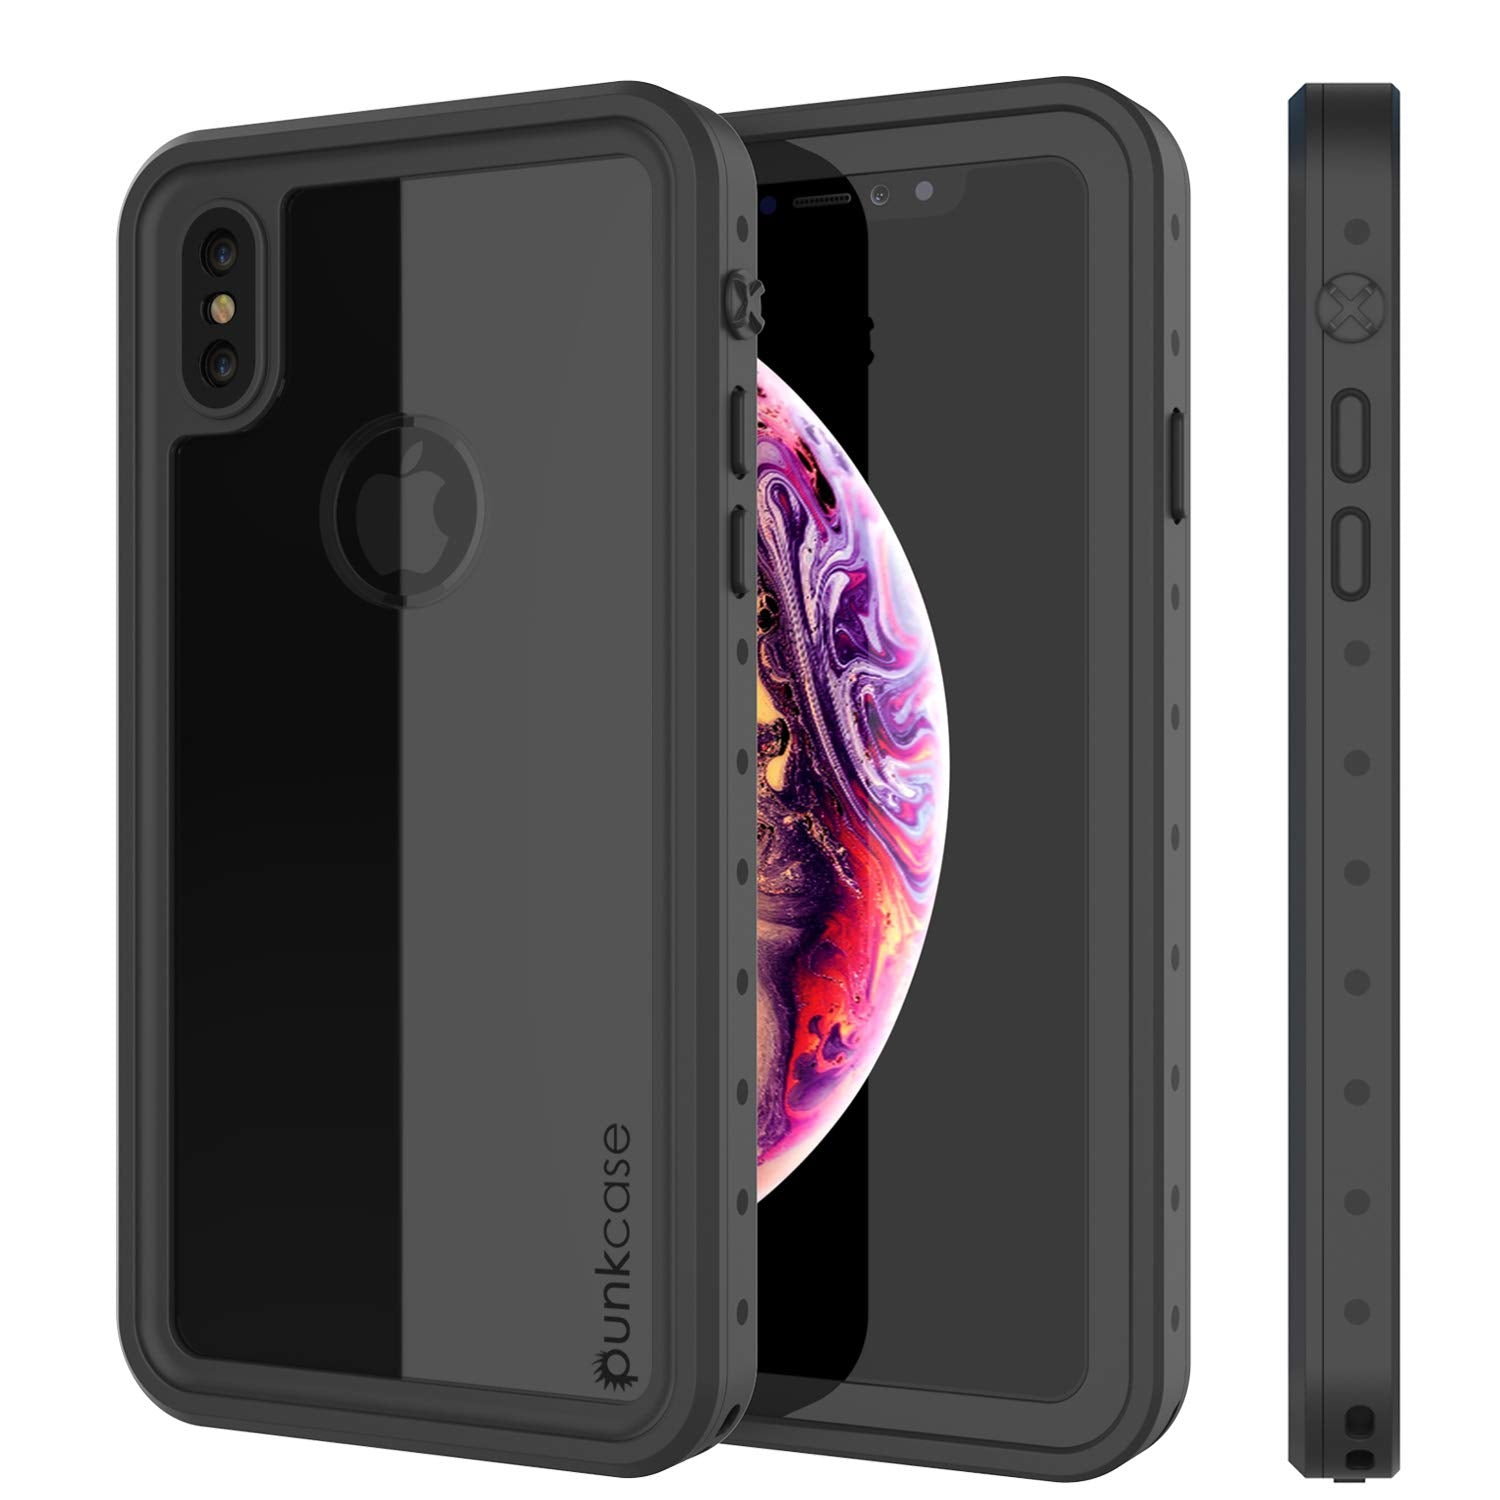 iPhone XS Max Waterproof IP68 Case, Punkcase [Clear] [StudStar Series] [Slim Fit] [Dirtproof]